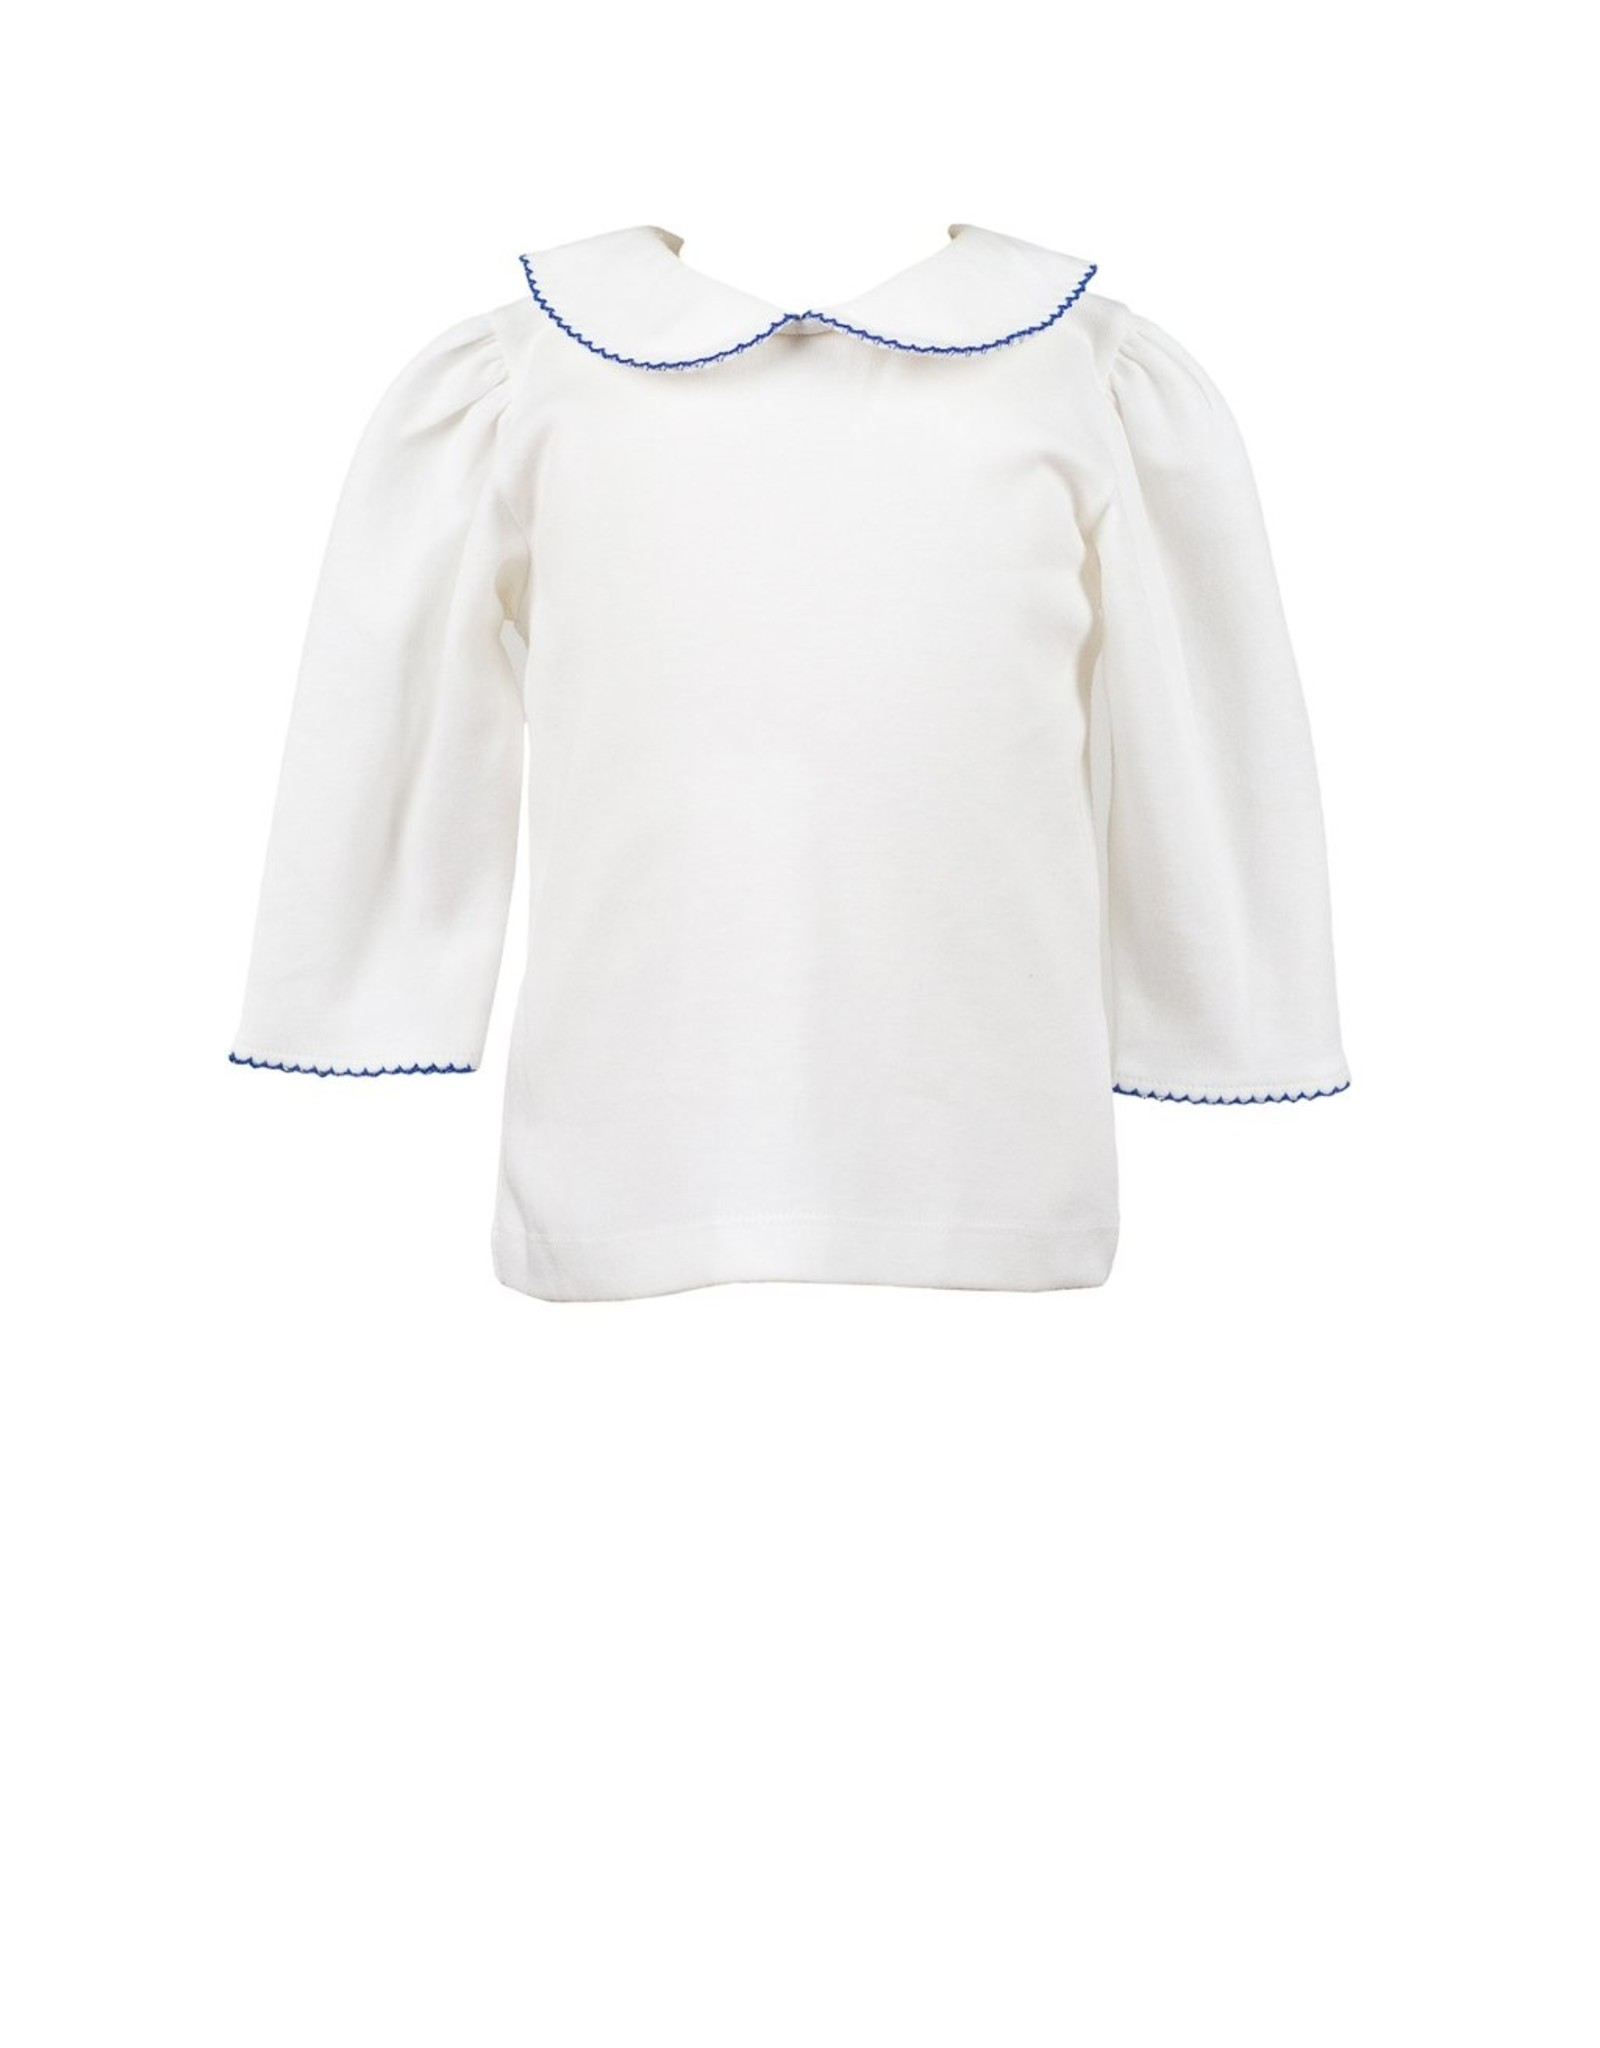 The Proper Peony White With Royal Blue Trim 3/4 Sleeve Shirt